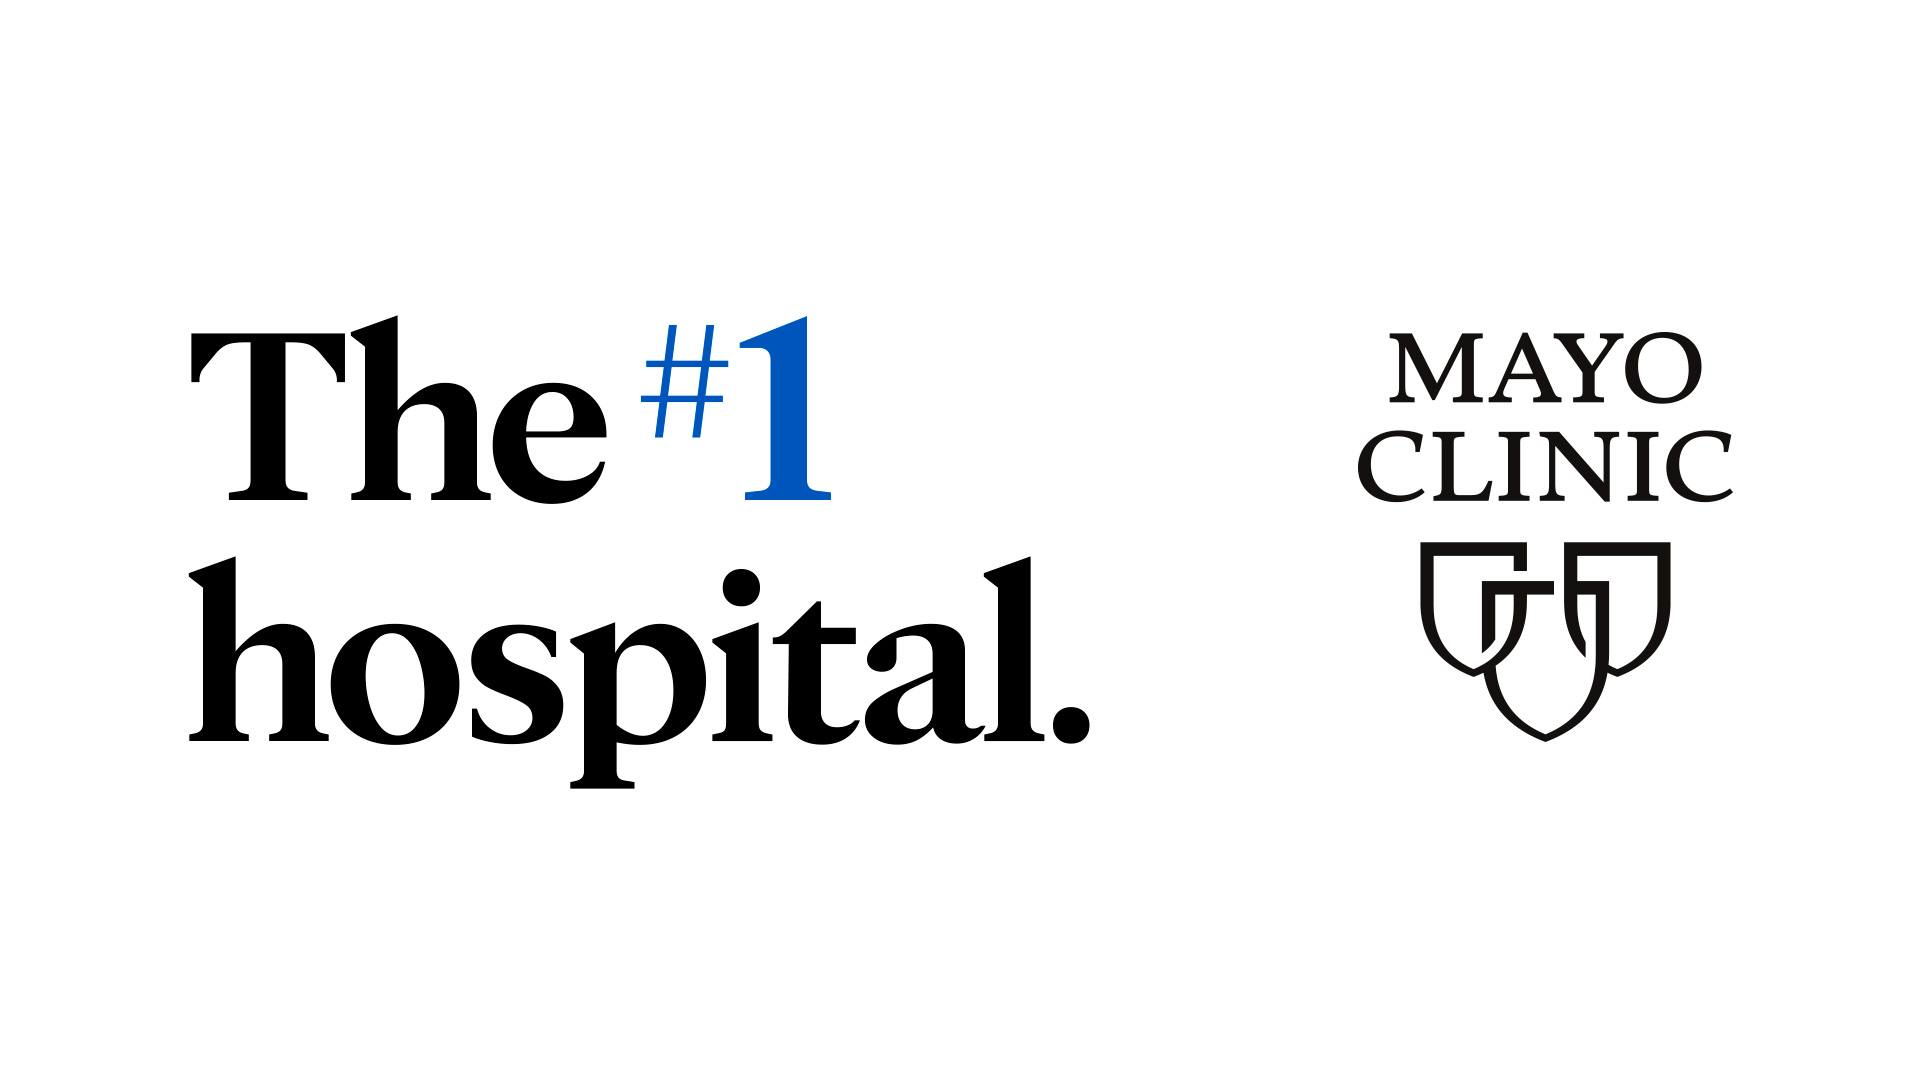 U.S. News & World Report ranking Mayo Clinic as number one hospital